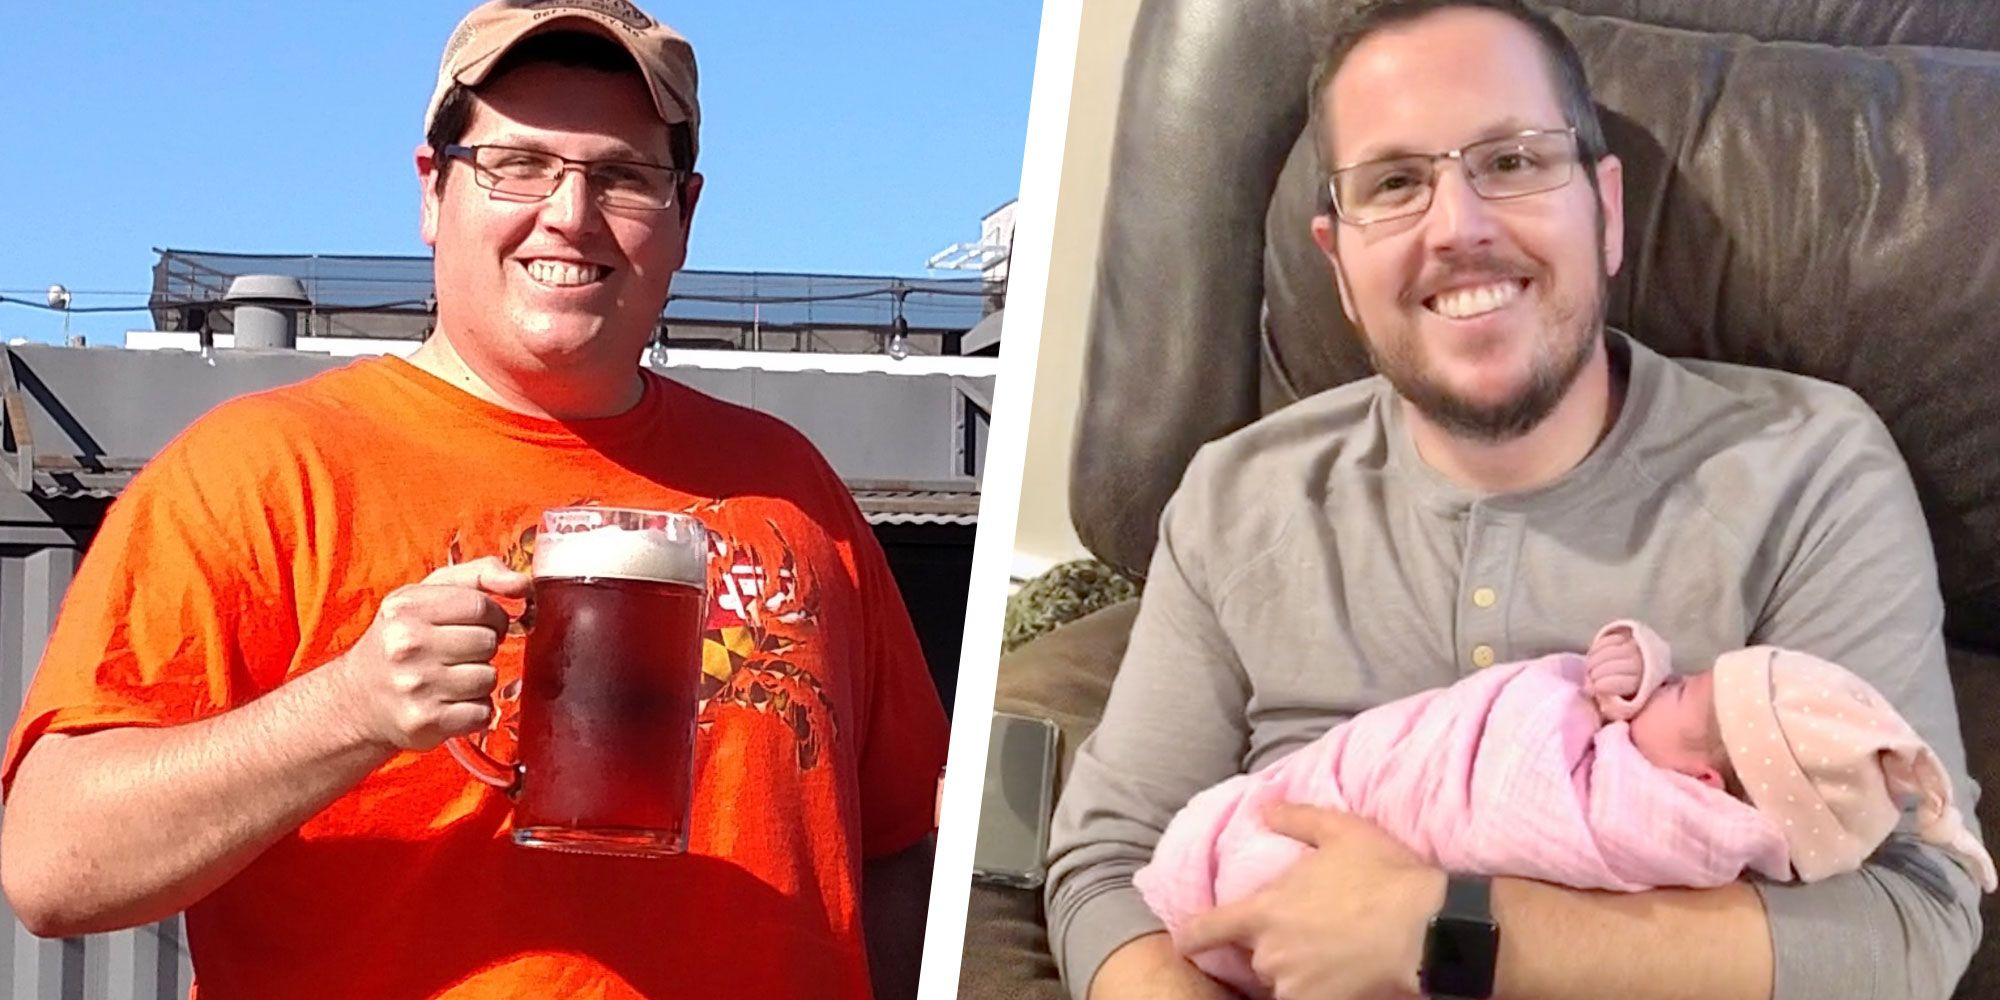 Cutting Back on Sugar and Carbs Helped This Dad Drop 75 Pounds